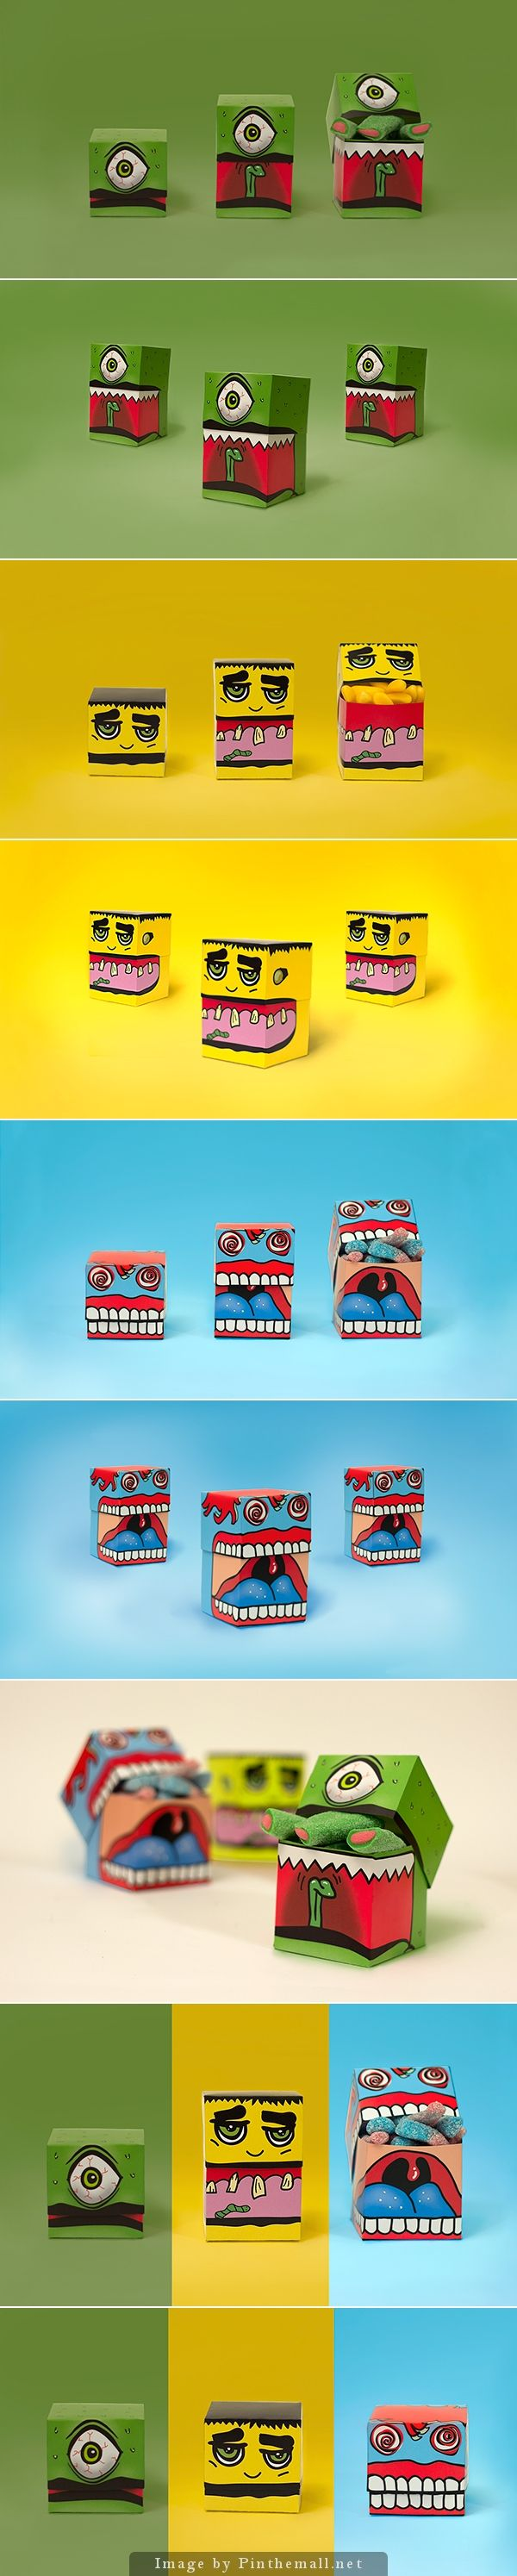 Even though Halloween is over Monster Candy packaging by Charlotte Olsen on Behance is just too cute to resist curated by Packaging Diva PD